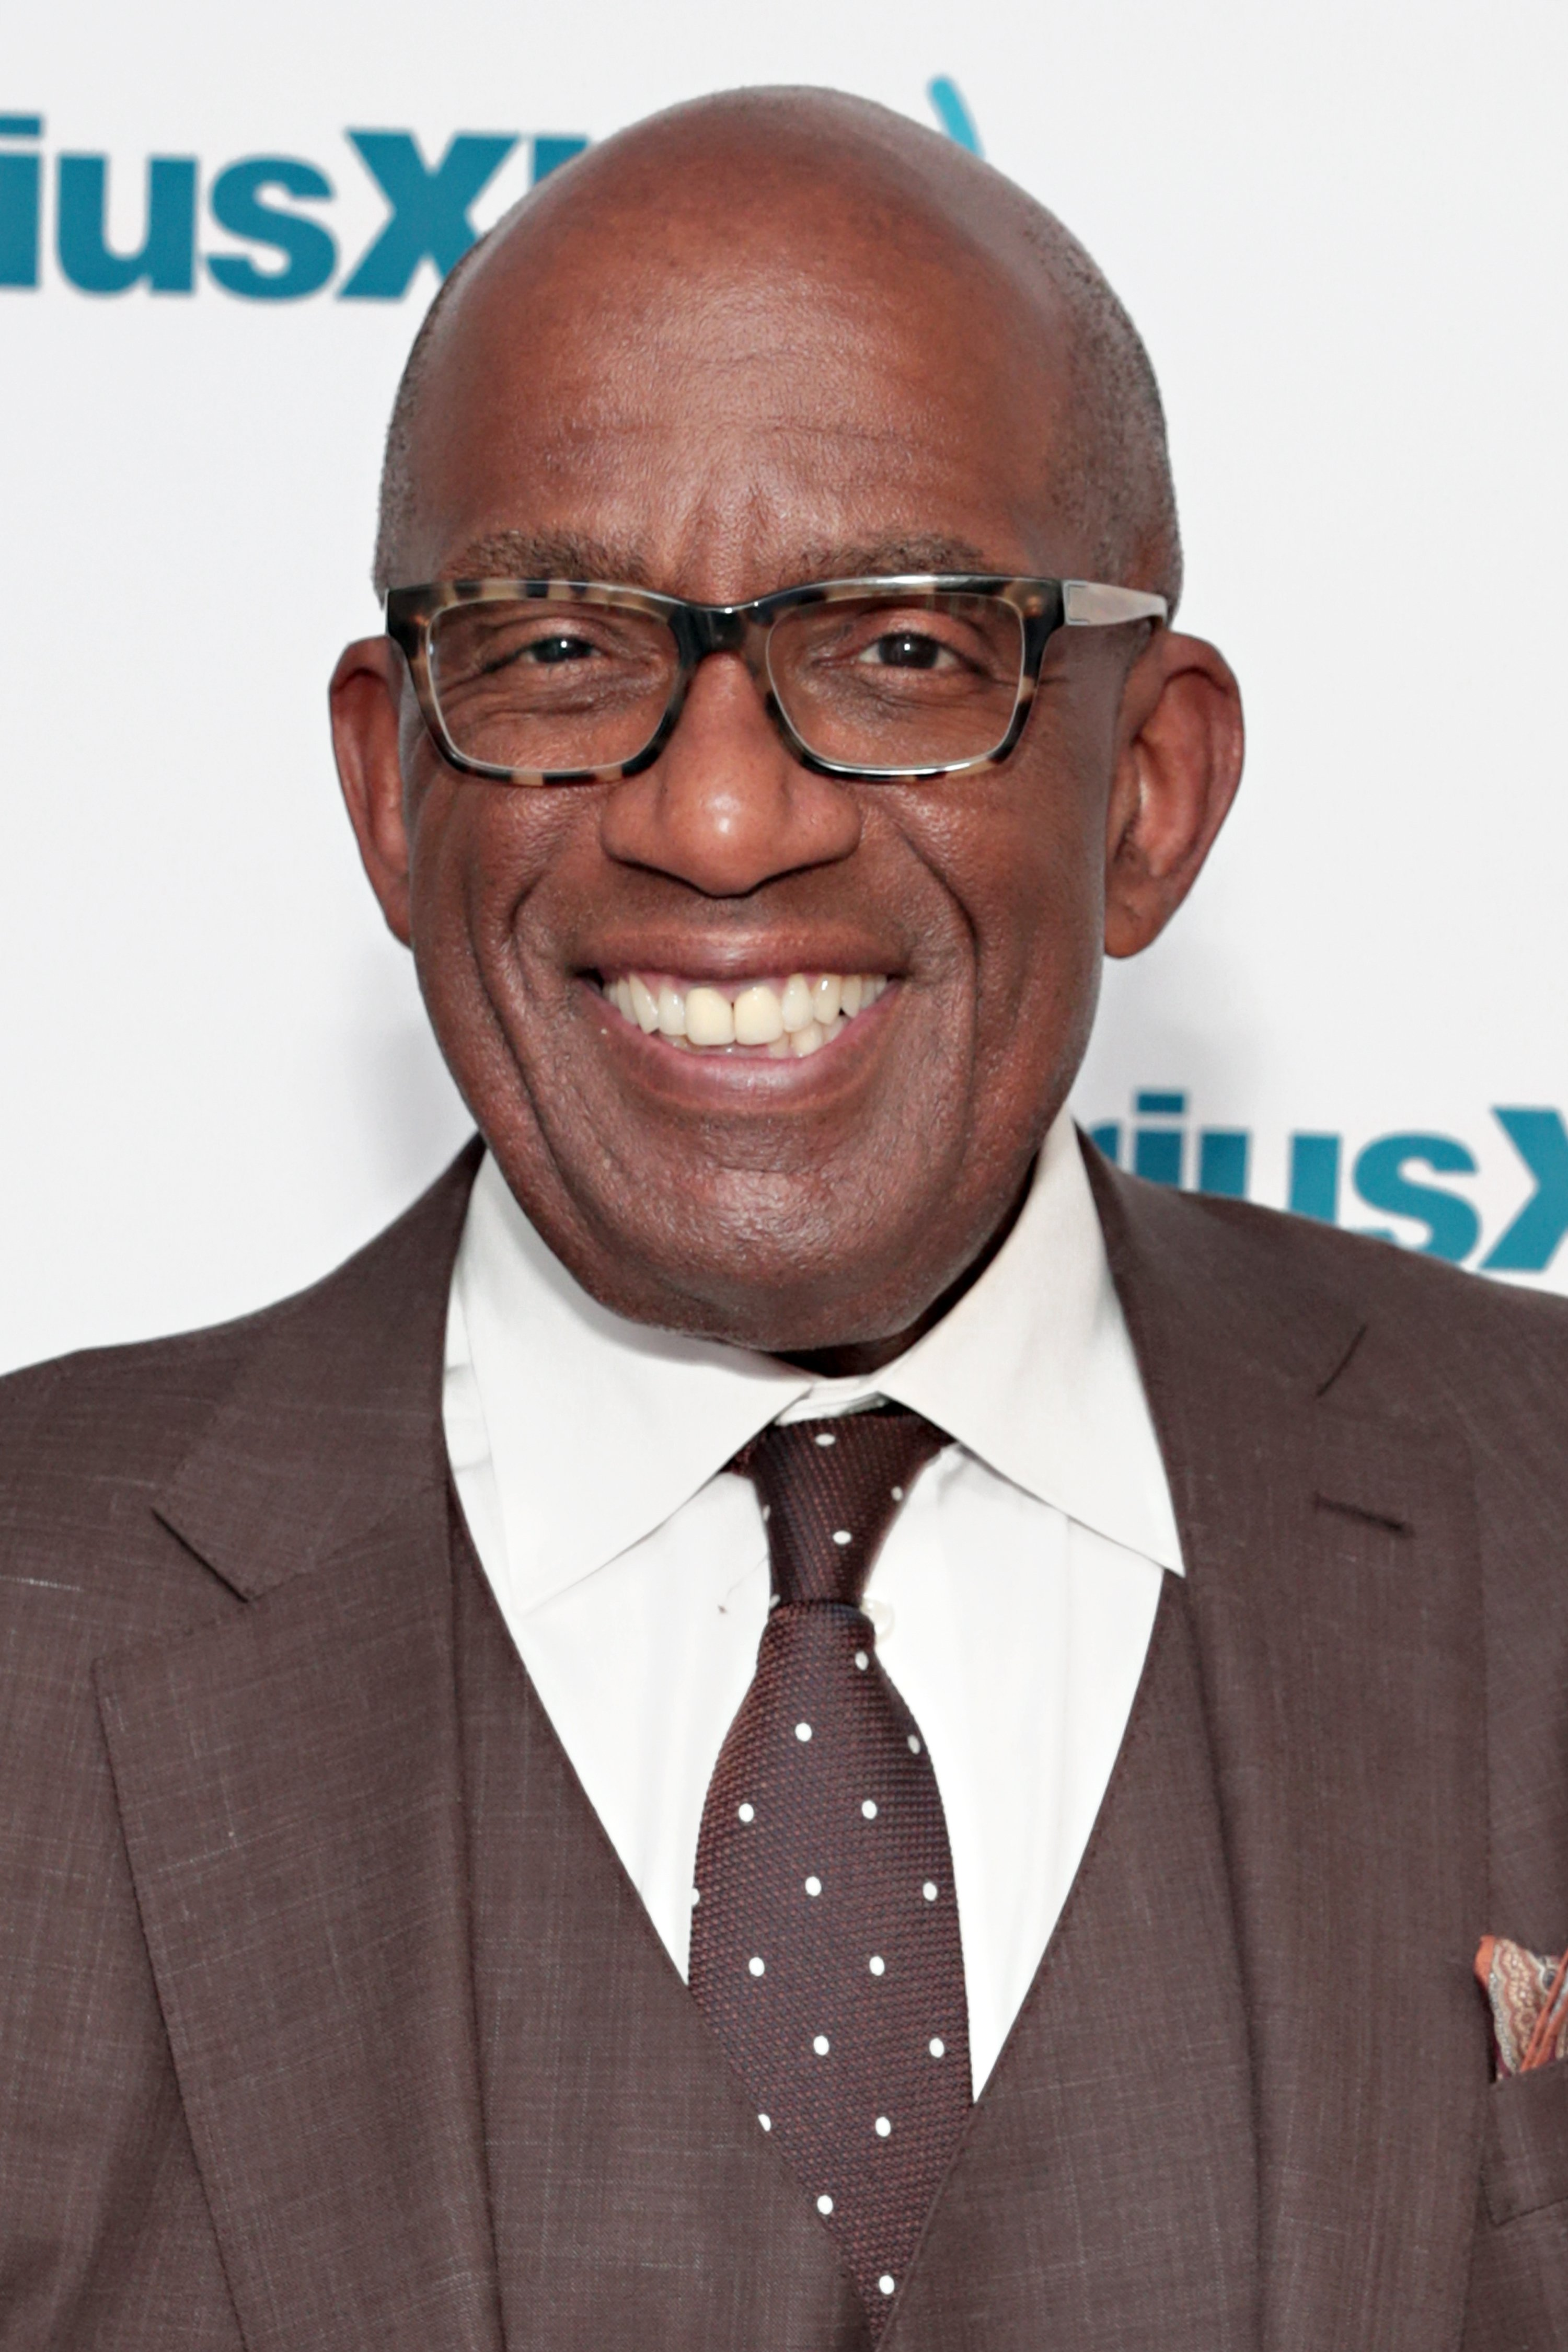 Al Roker visiting the SiriusXM Studios in May 2018. | Photo: Getty Images